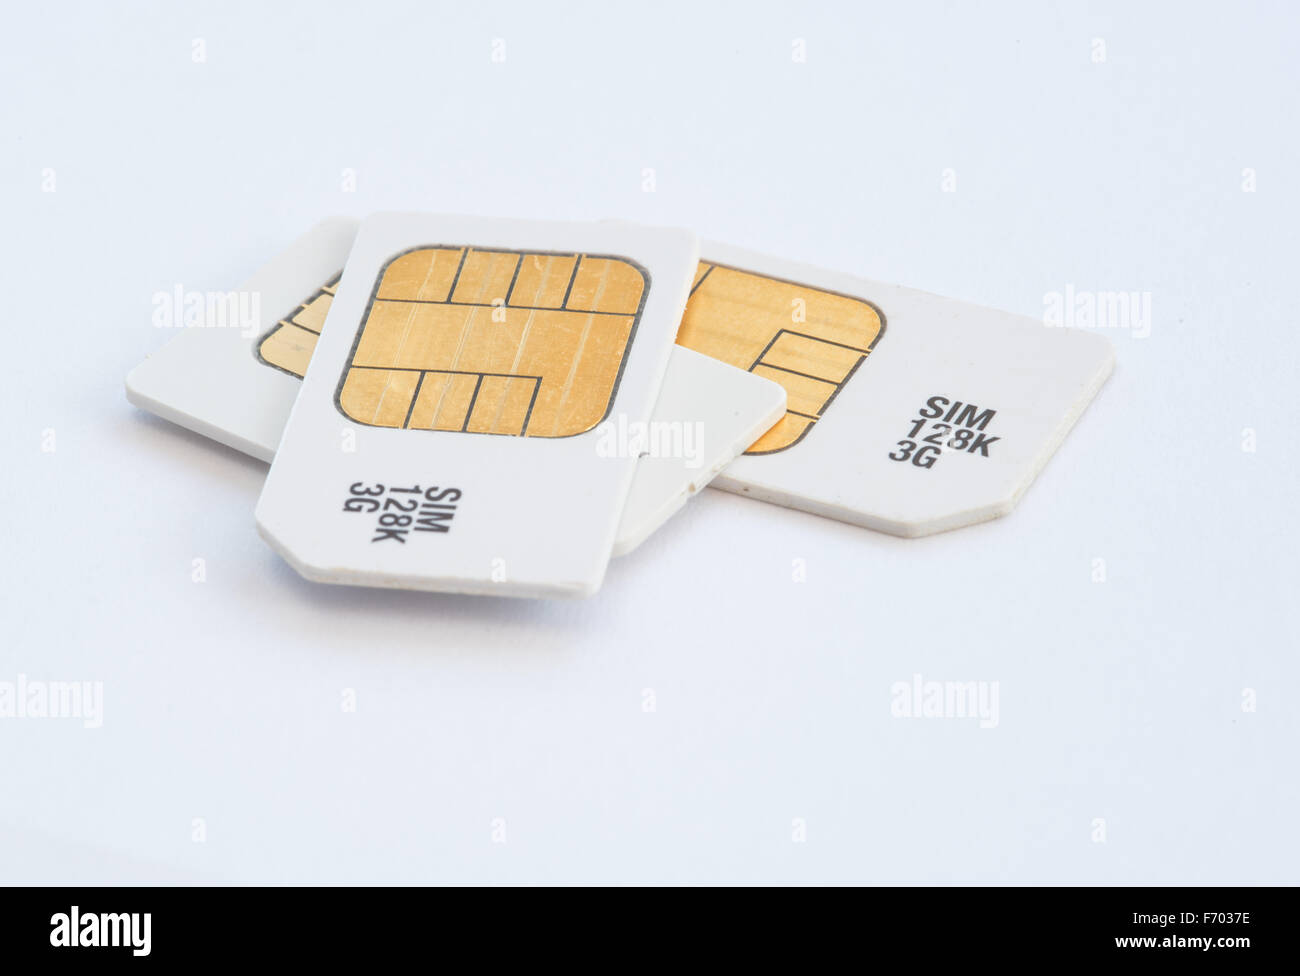 Group of mobile subscriber Identity Module, 3g memory sim cards - Stock Image